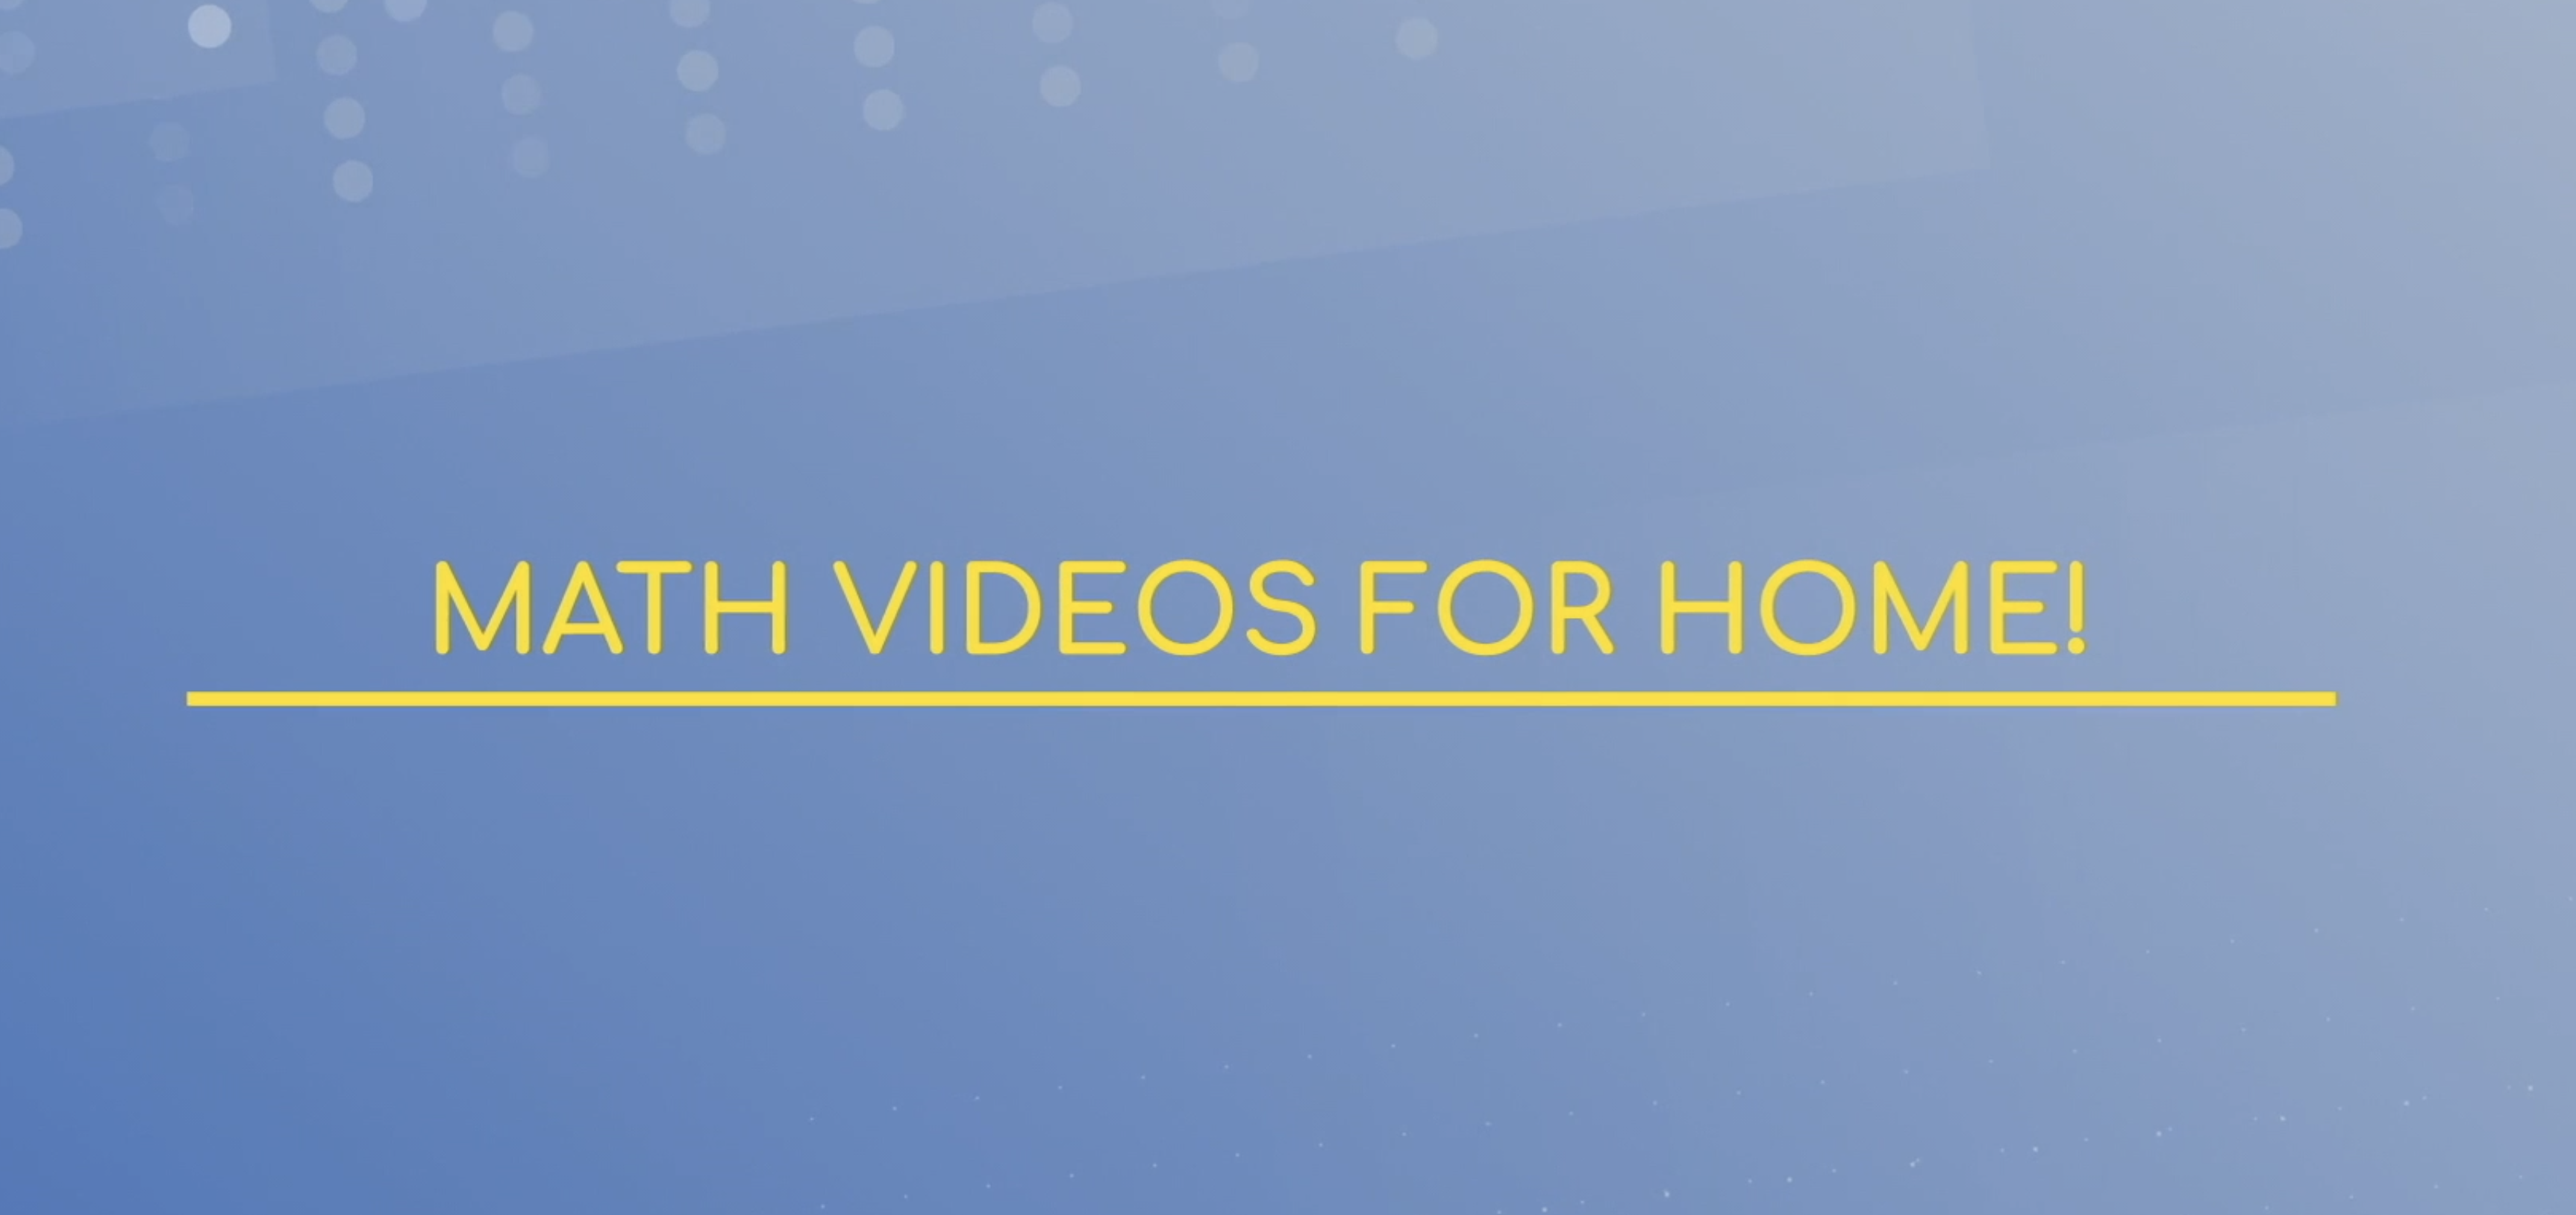 Image that says Math Videos for Home